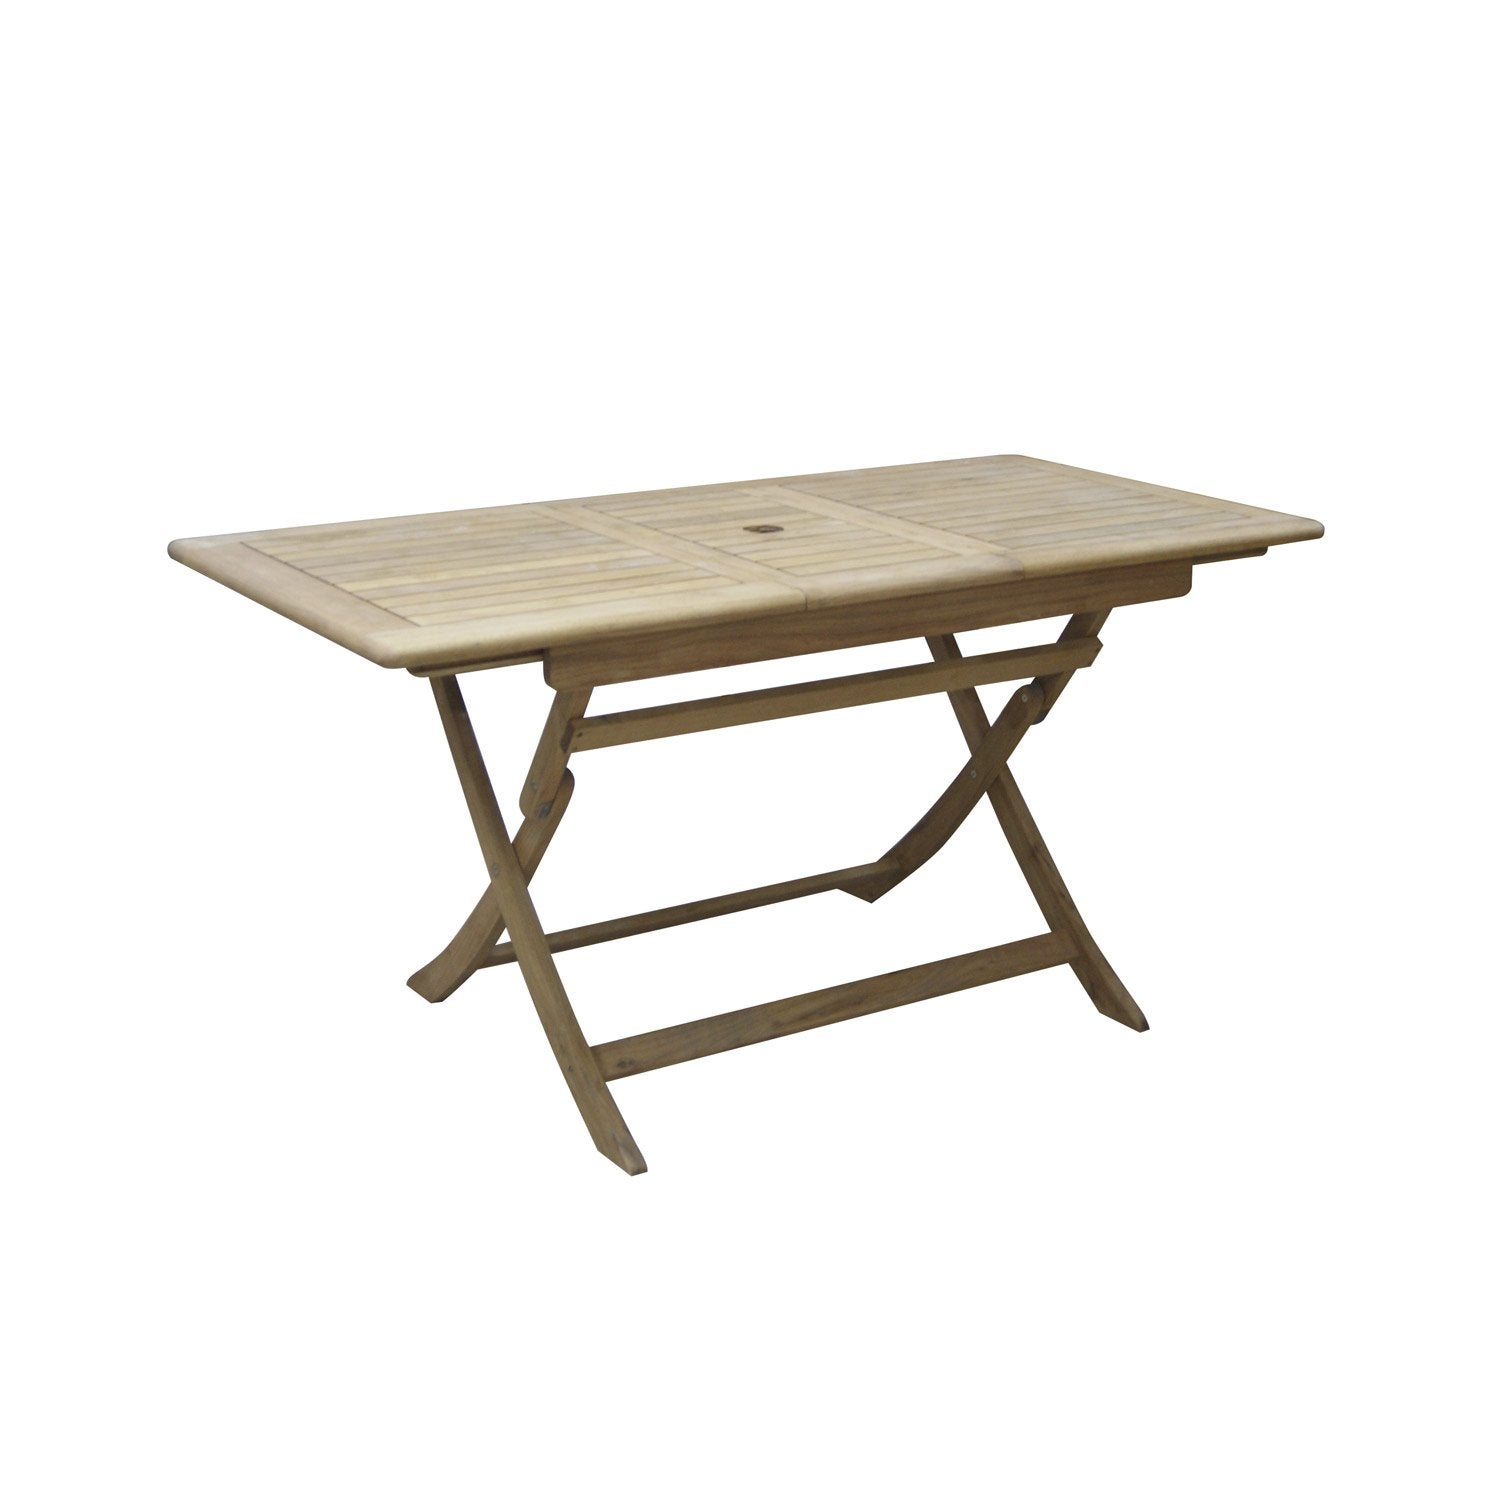 Salon de jardin bois table pliante - Table de jardin pliante ...